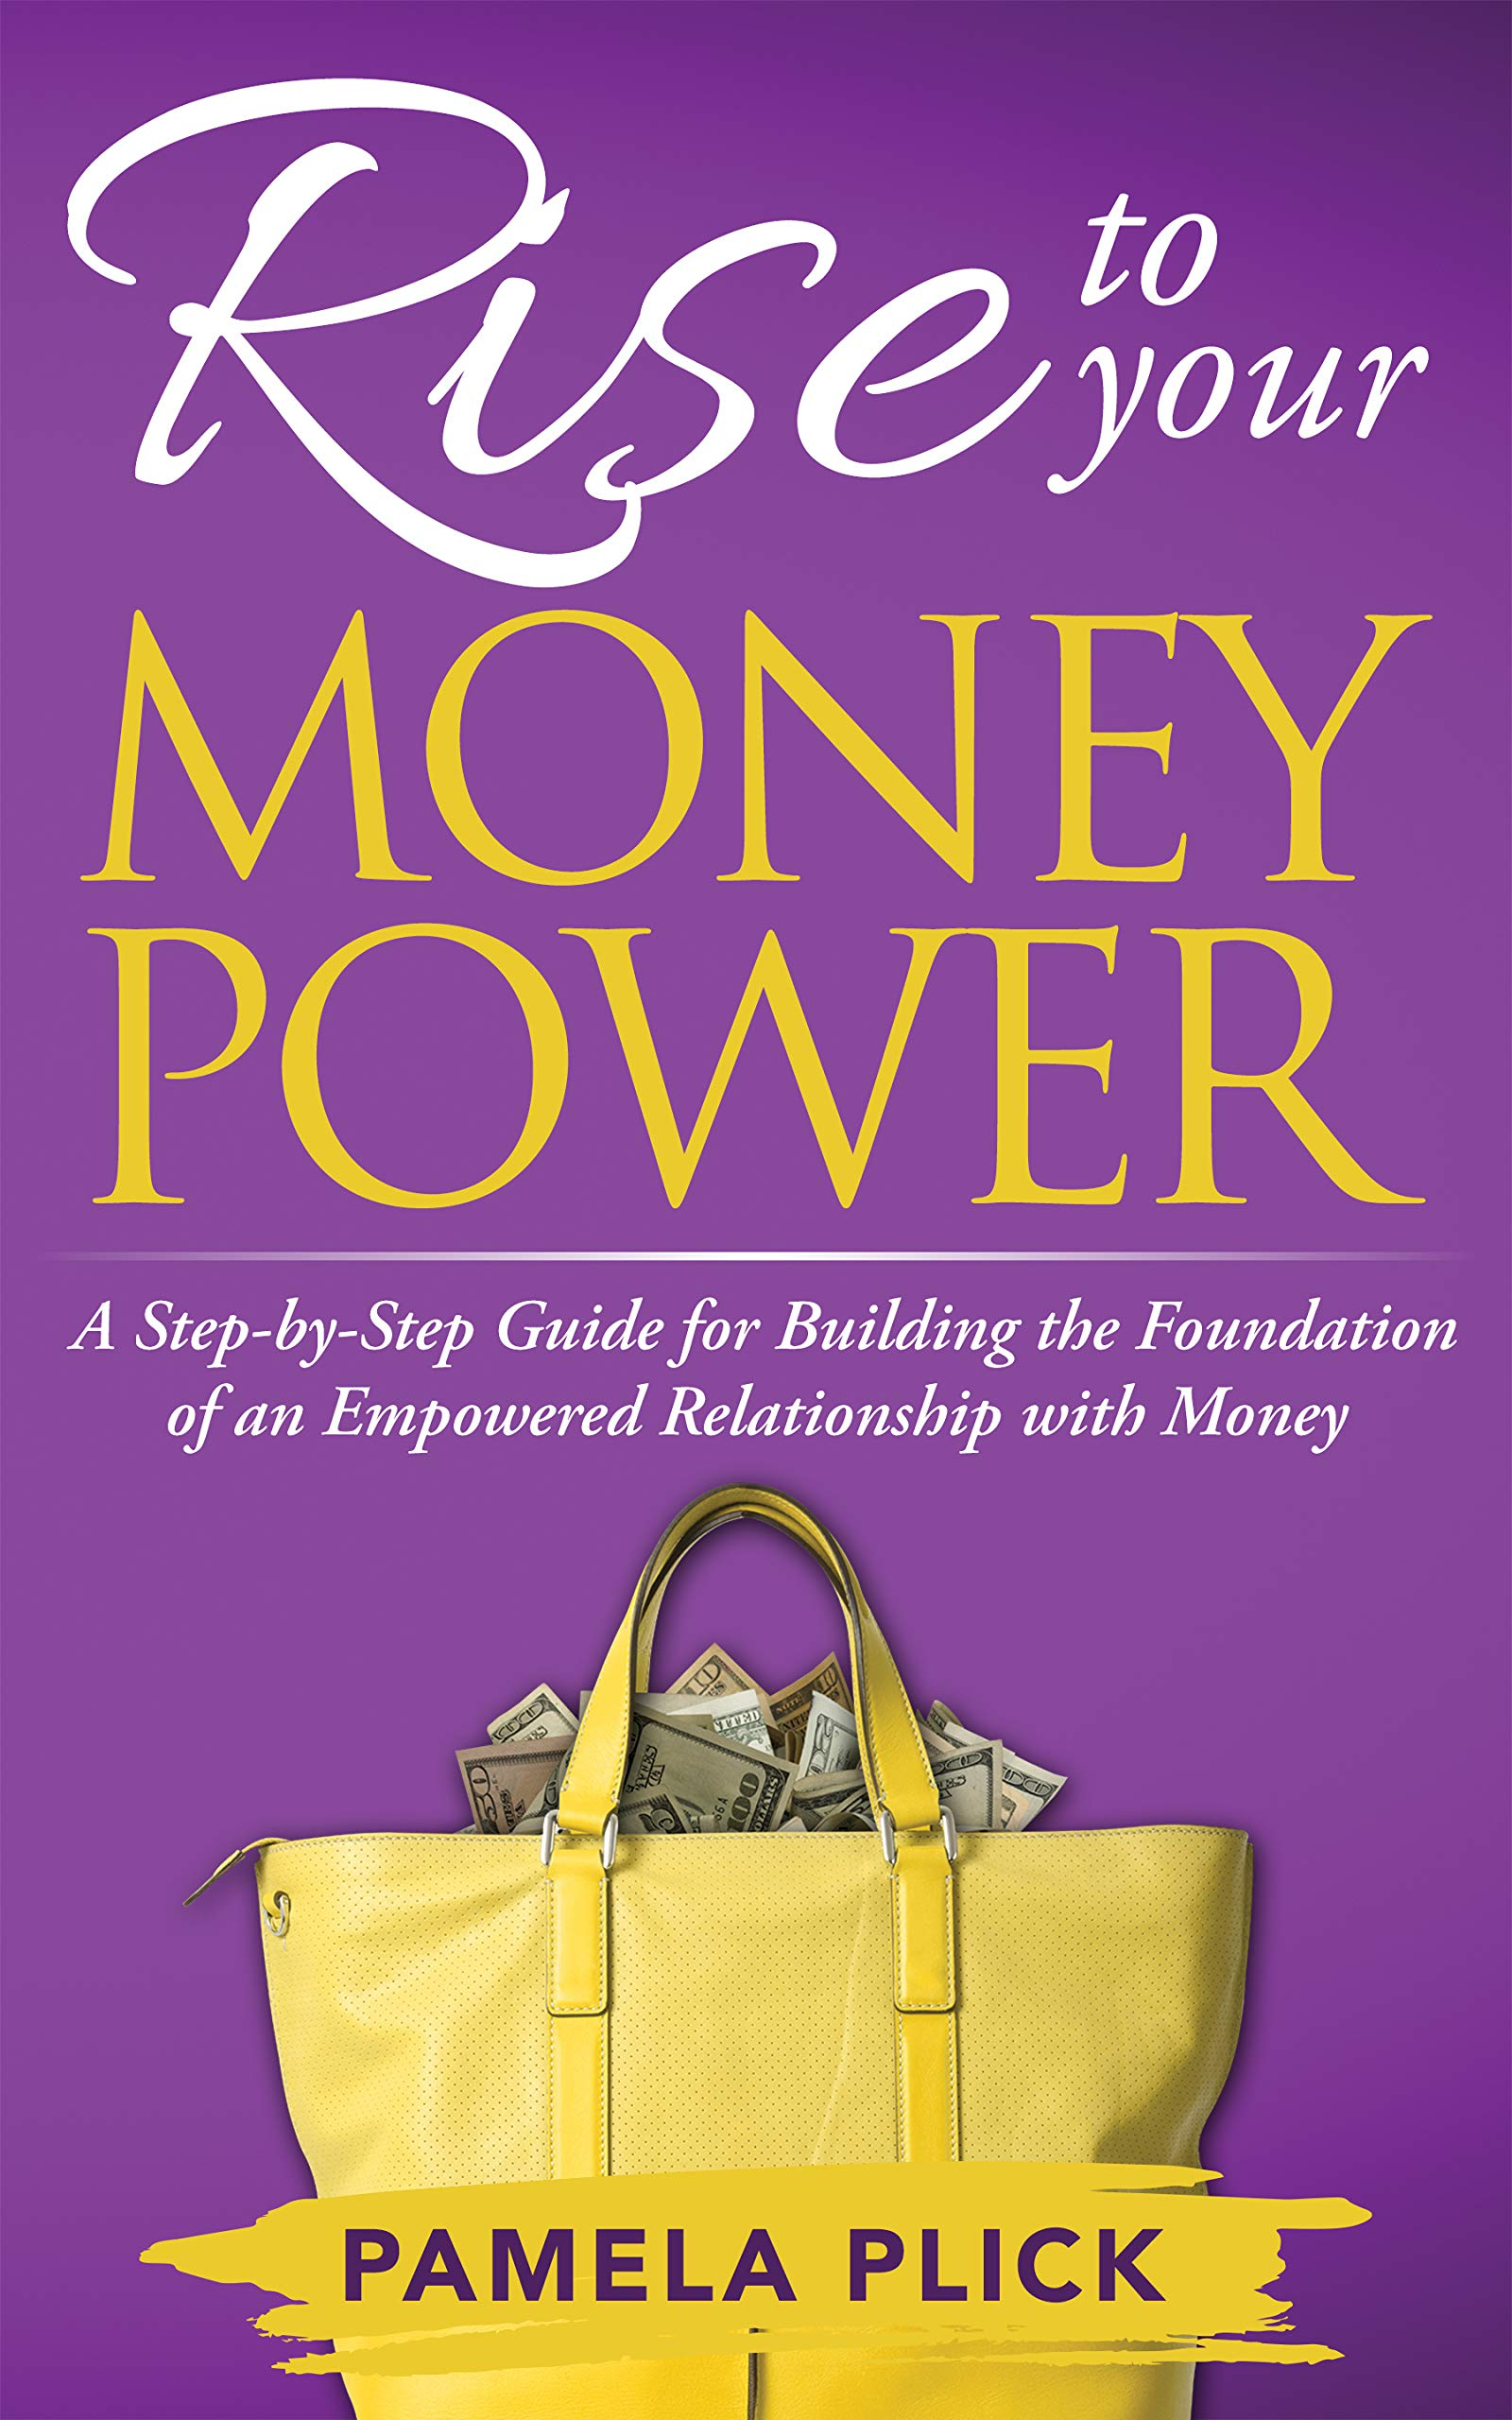 Rise to Your Money Power: A Step-by-Step Guide for Building the Foundation of an Empowered Relationship with Money